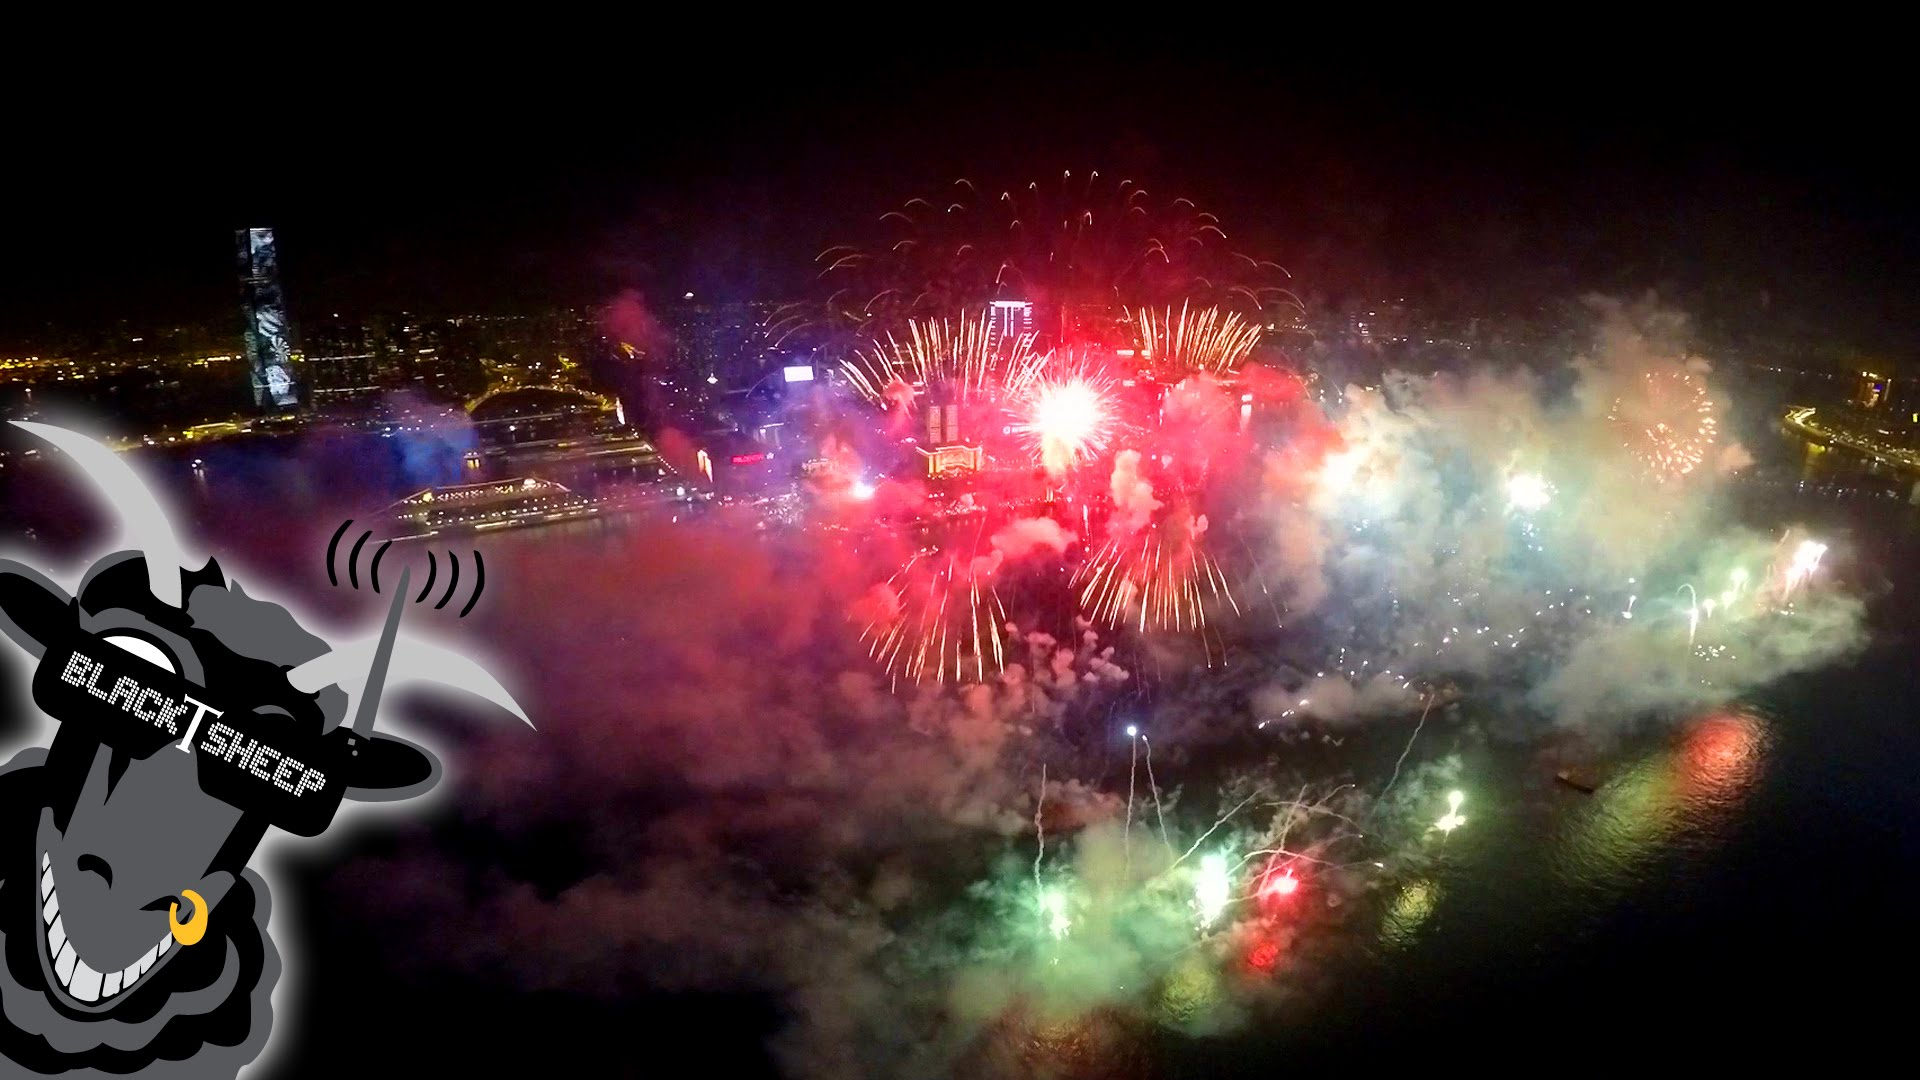 Drone Video of a Spectacular 2015 New Year's Fireworks Show in Hong Kong